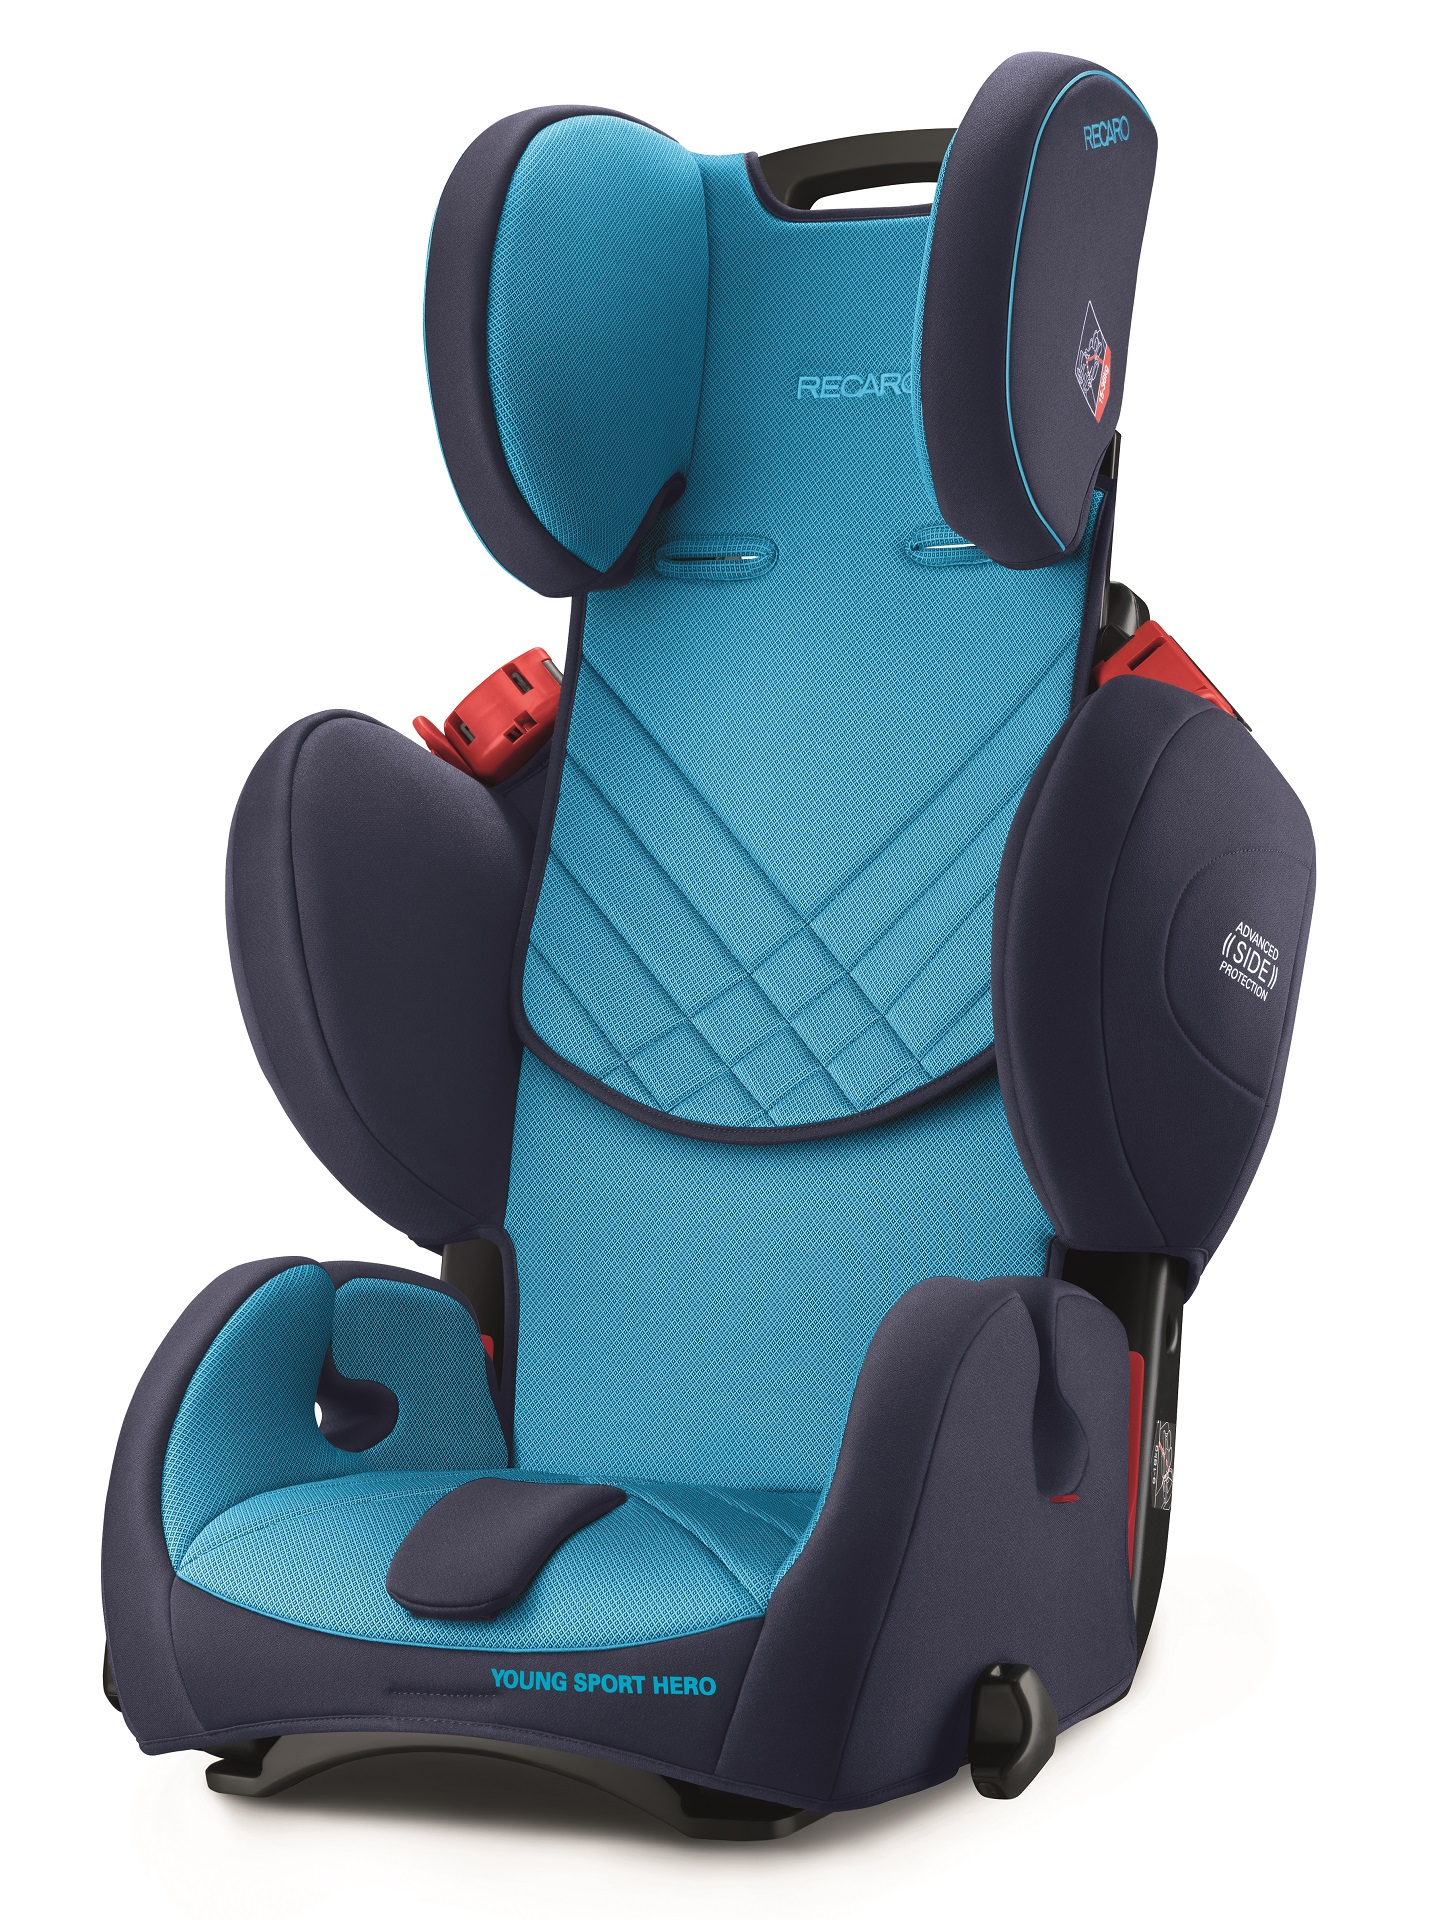 Delightful ... Recaro Child Car Seat Young Sport Hero Indy Red 2018   Large Image 3 ...